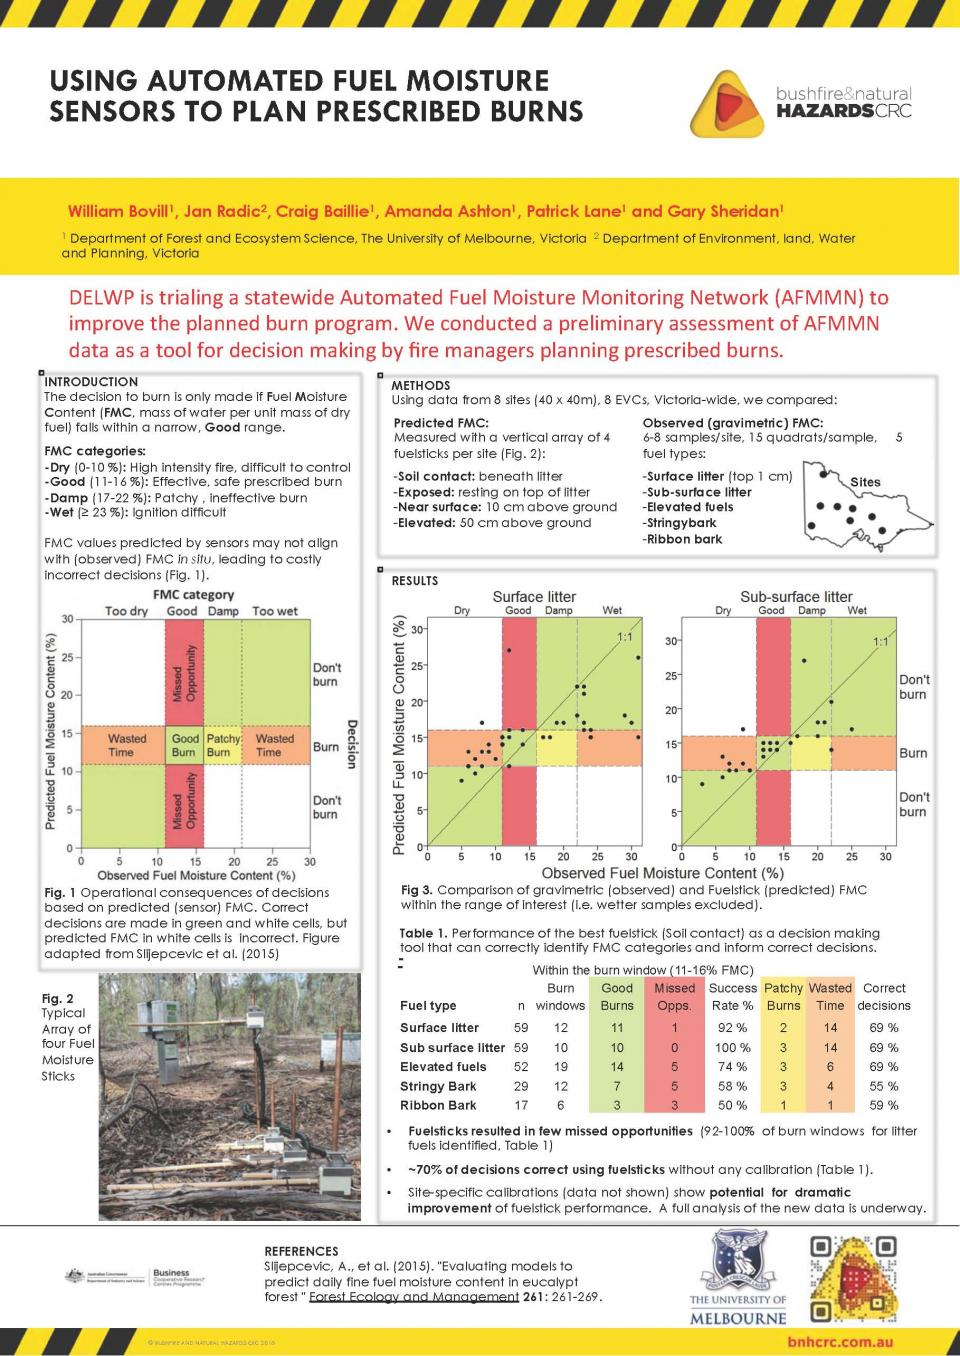 Using Automated Fuel Moisture Sensors to Plan Prescribed Burns